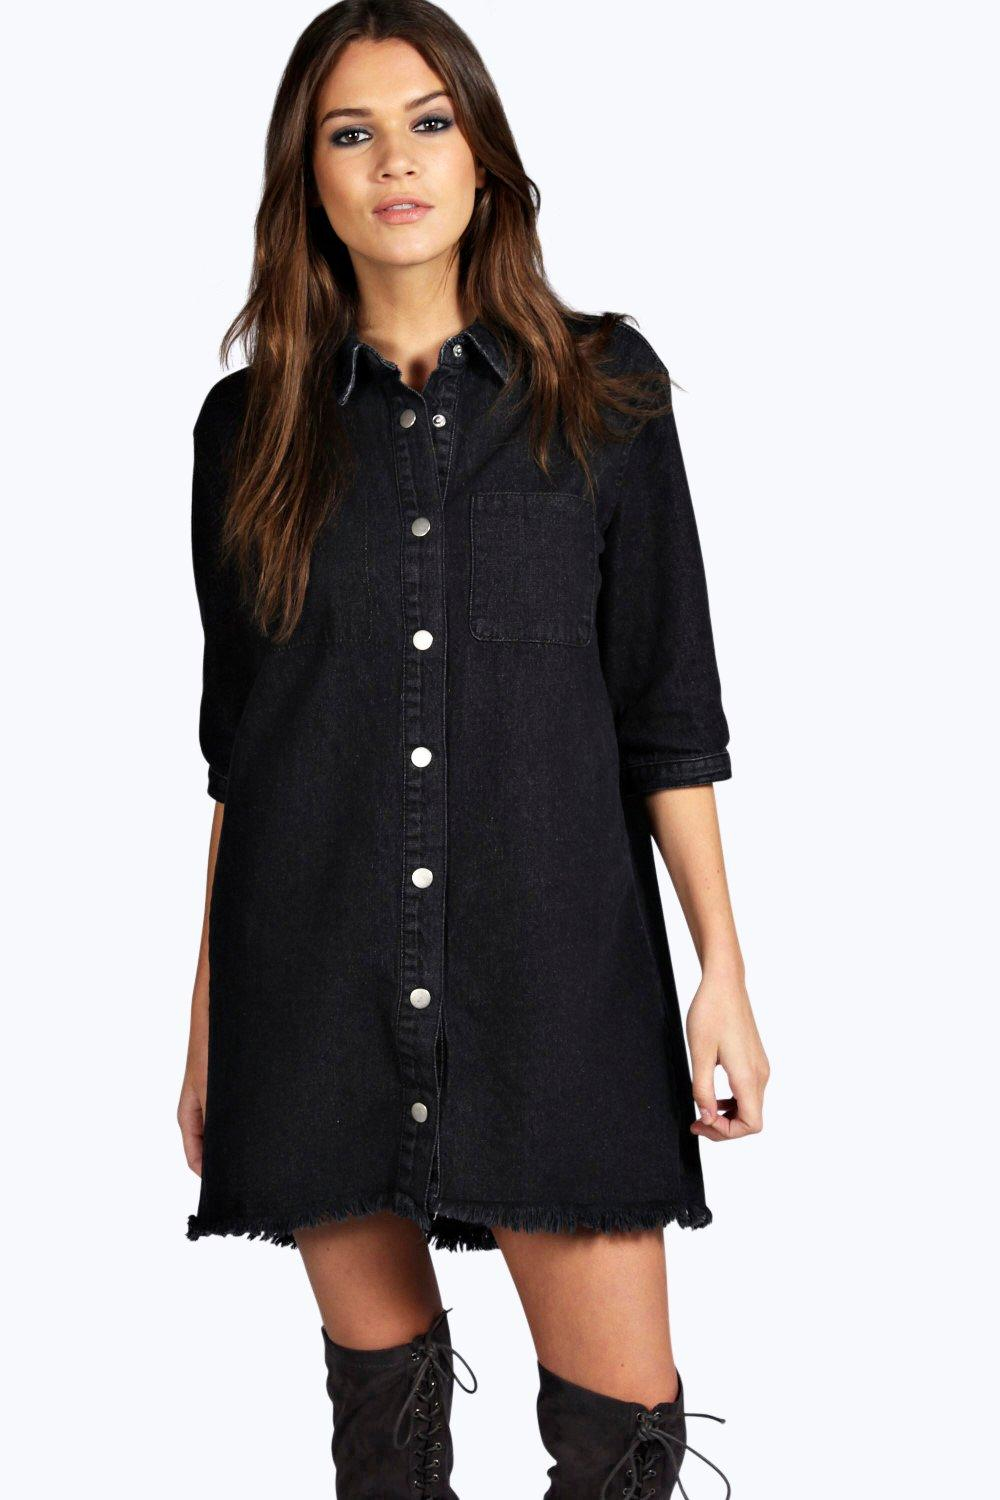 You searched for: black denim dress! Etsy is the home to thousands of handmade, vintage, and one-of-a-kind products and gifts related to your search. No matter what you're looking for or where you are in the world, our global marketplace of sellers can help you find unique and affordable options. Let's get started!